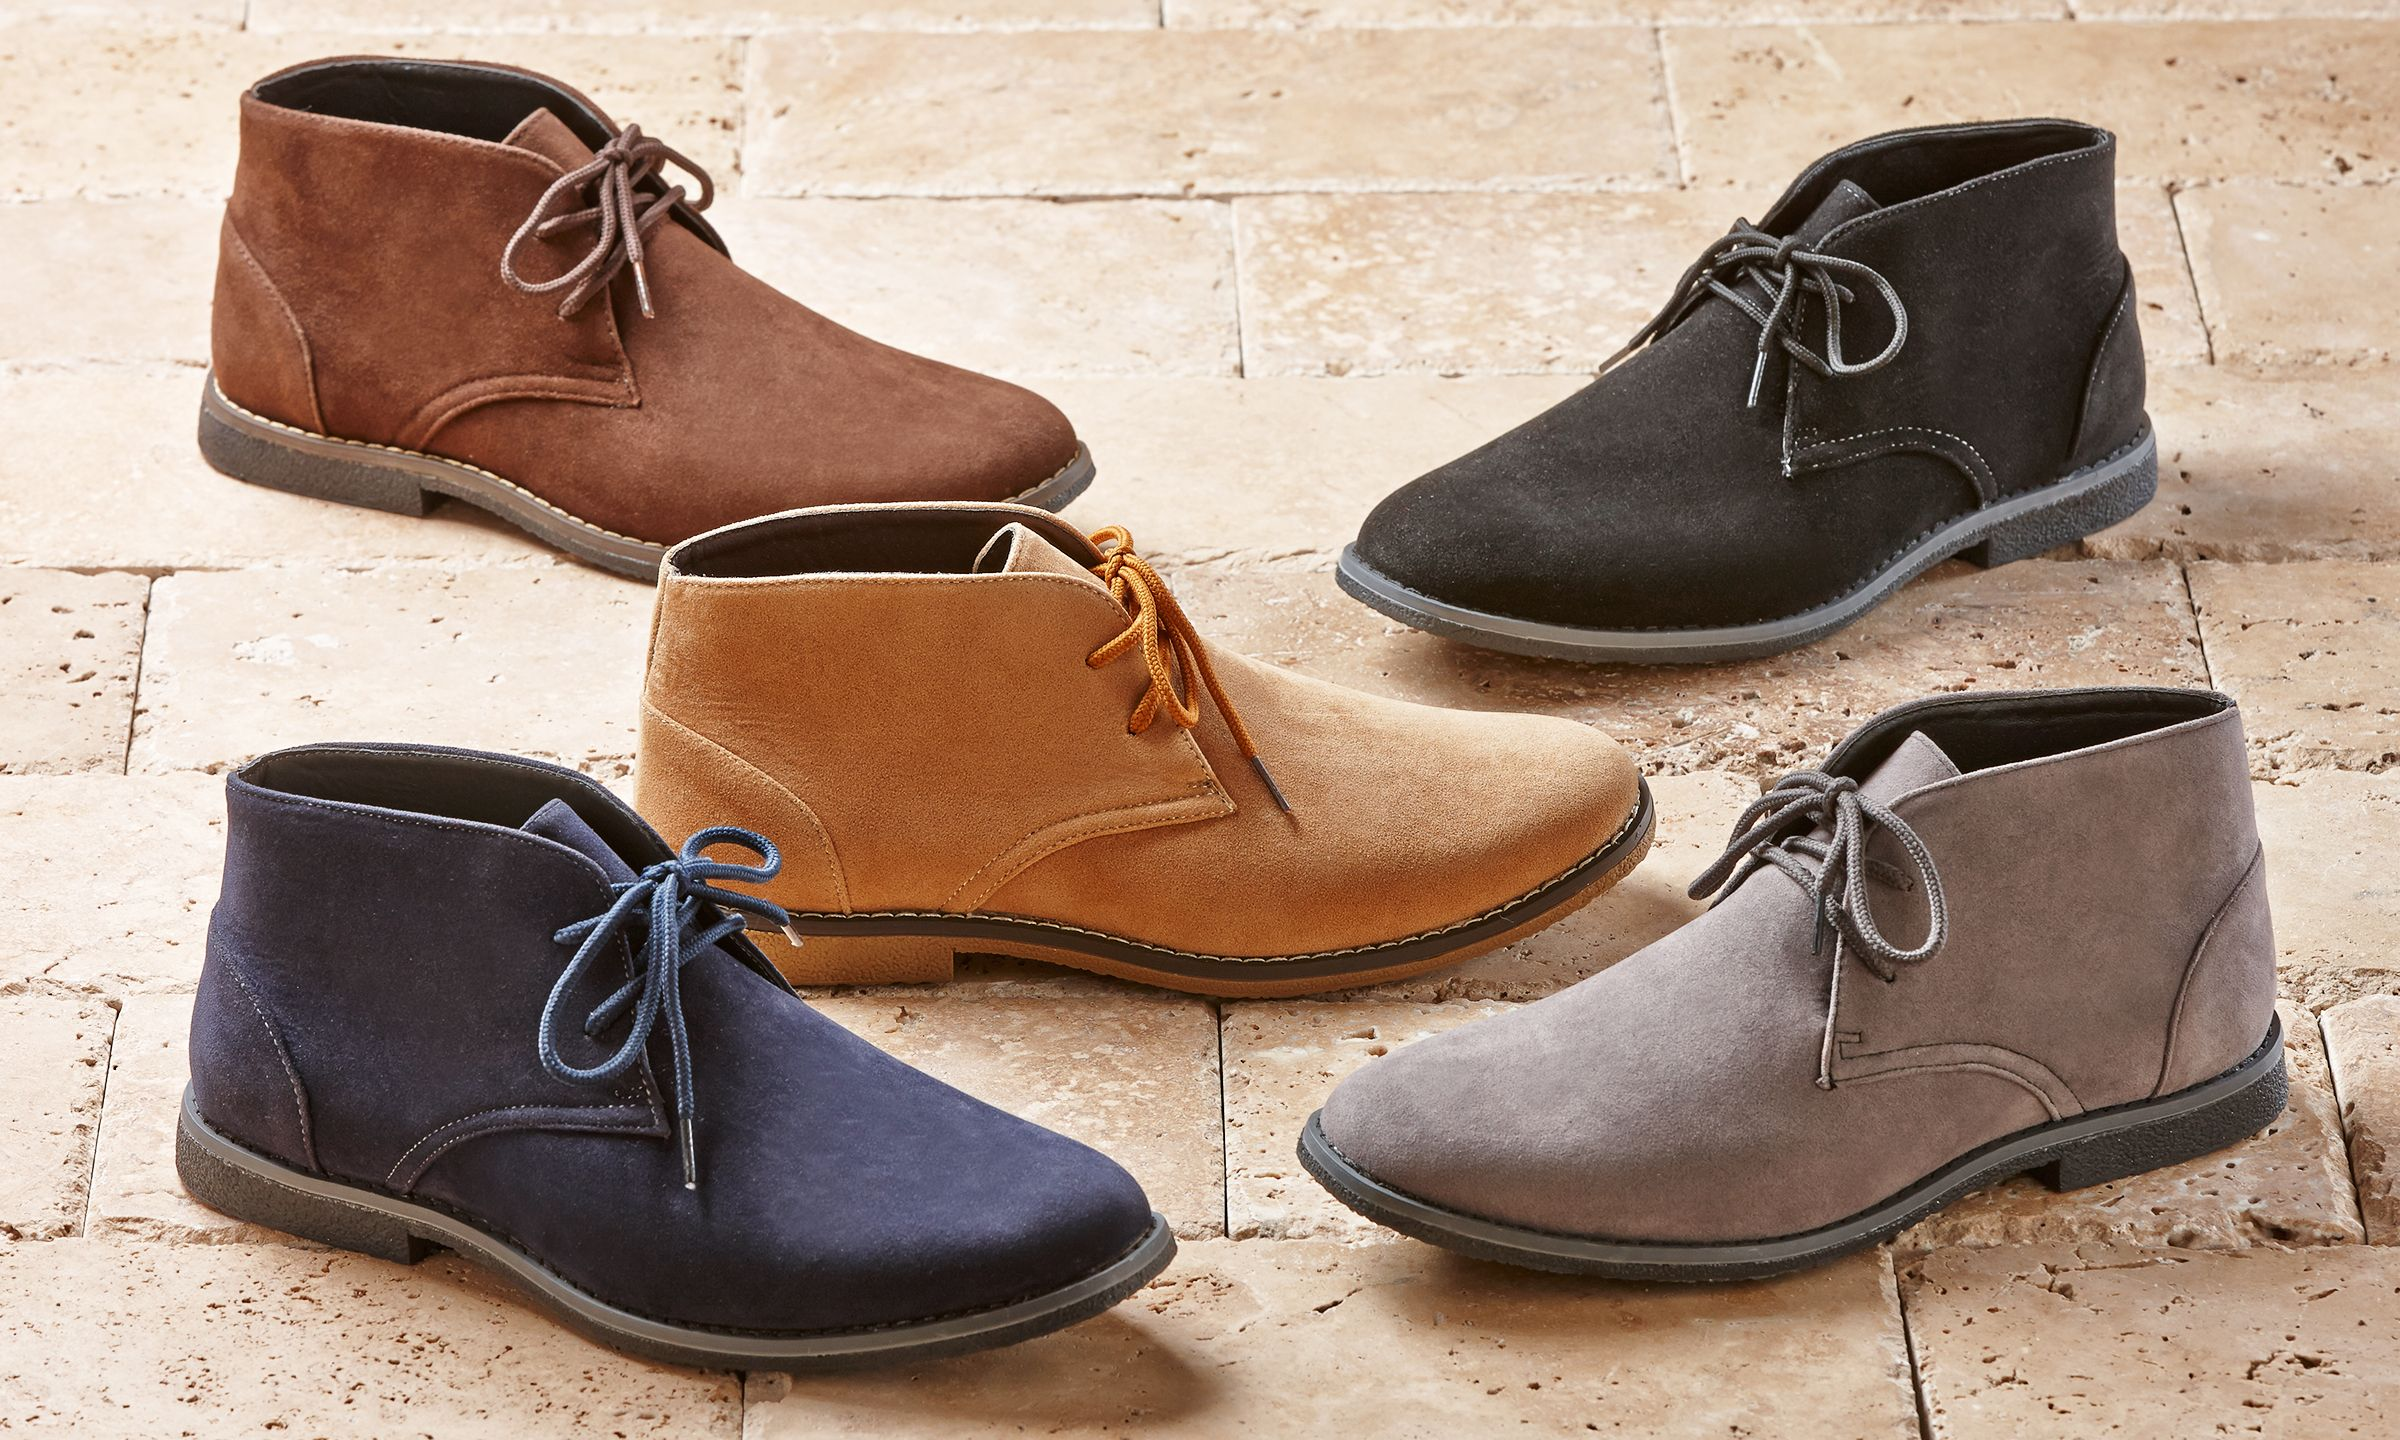 Lightweight microsuede chukka boots are one of the most recognizable,  versatile, and stylish men's shoe styl